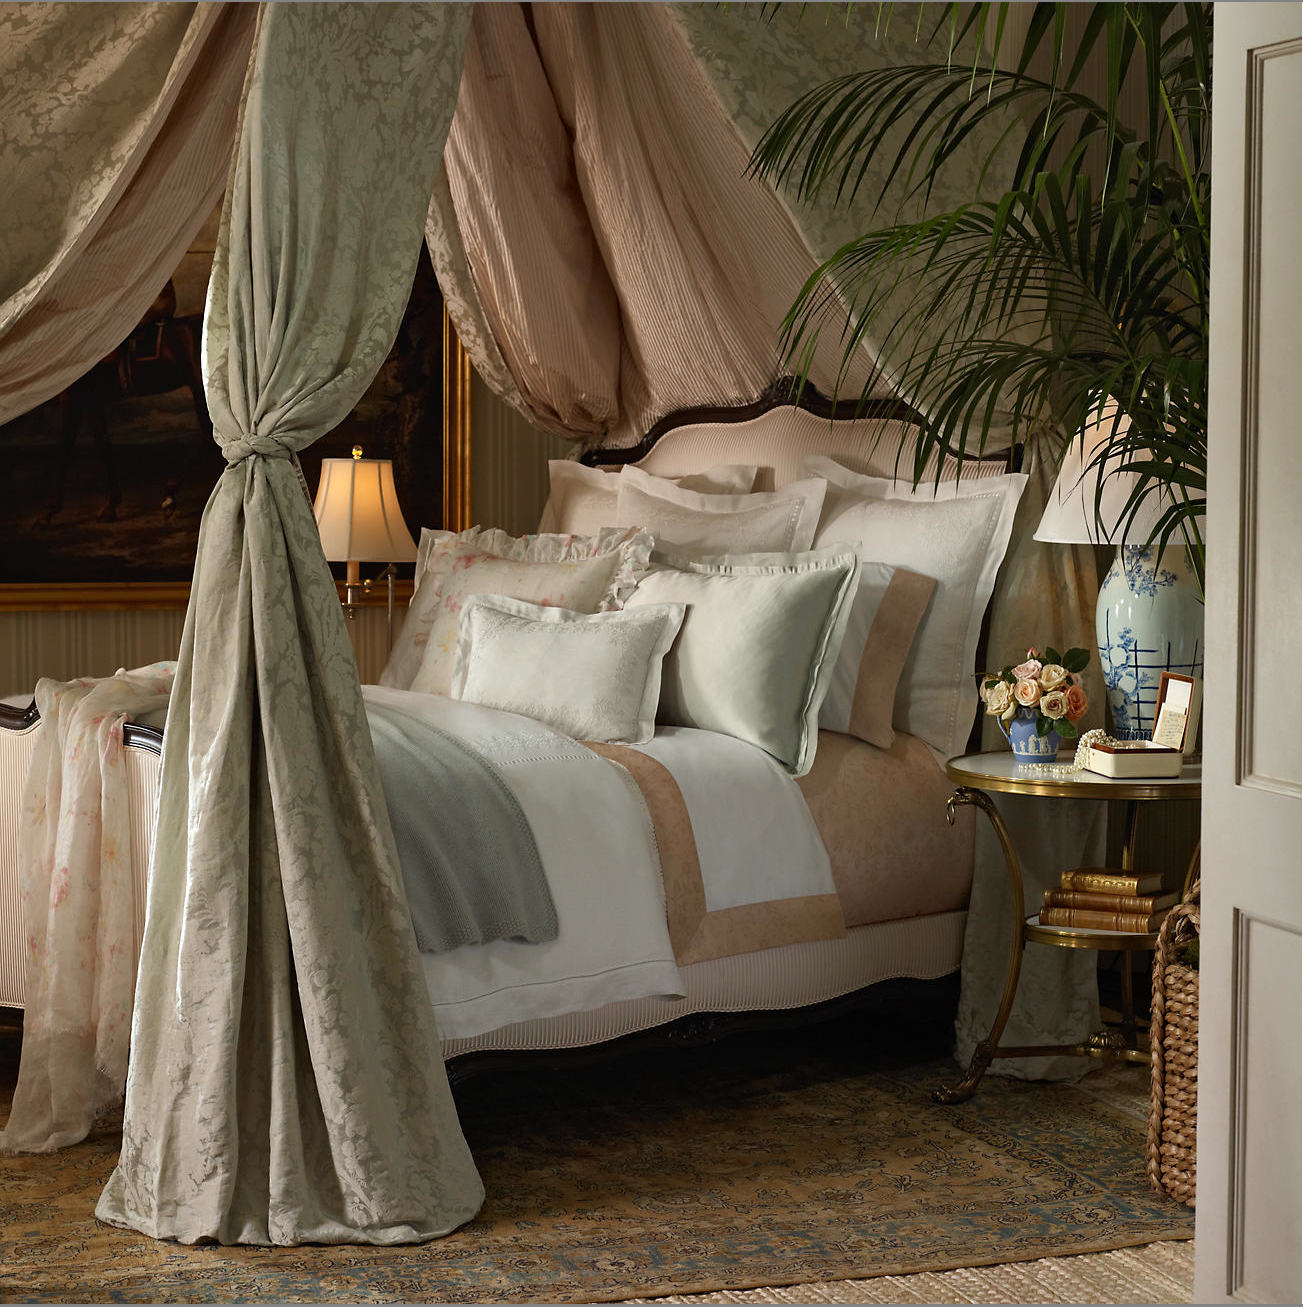 Ralph lauren home collection furniture - H Favorite Qview Full Size